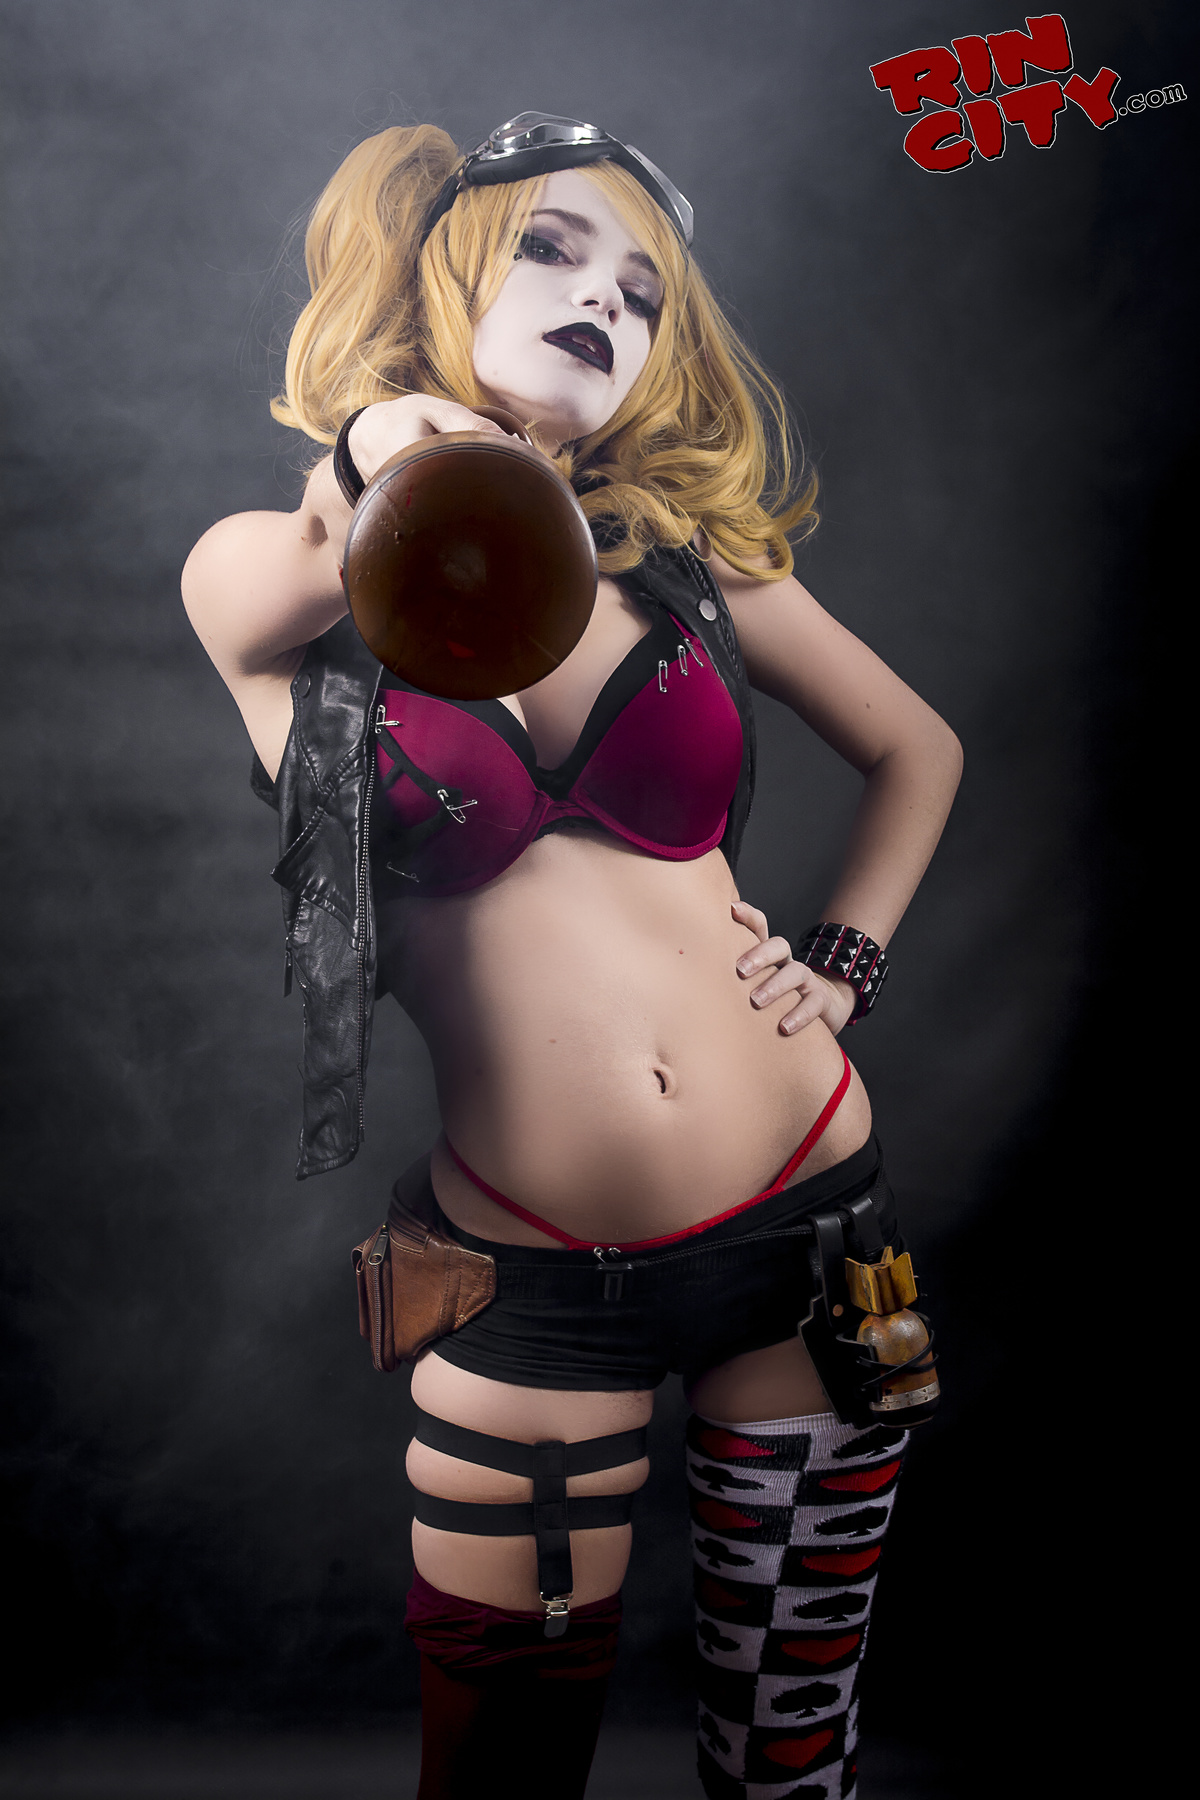 nude harley quinn pictures